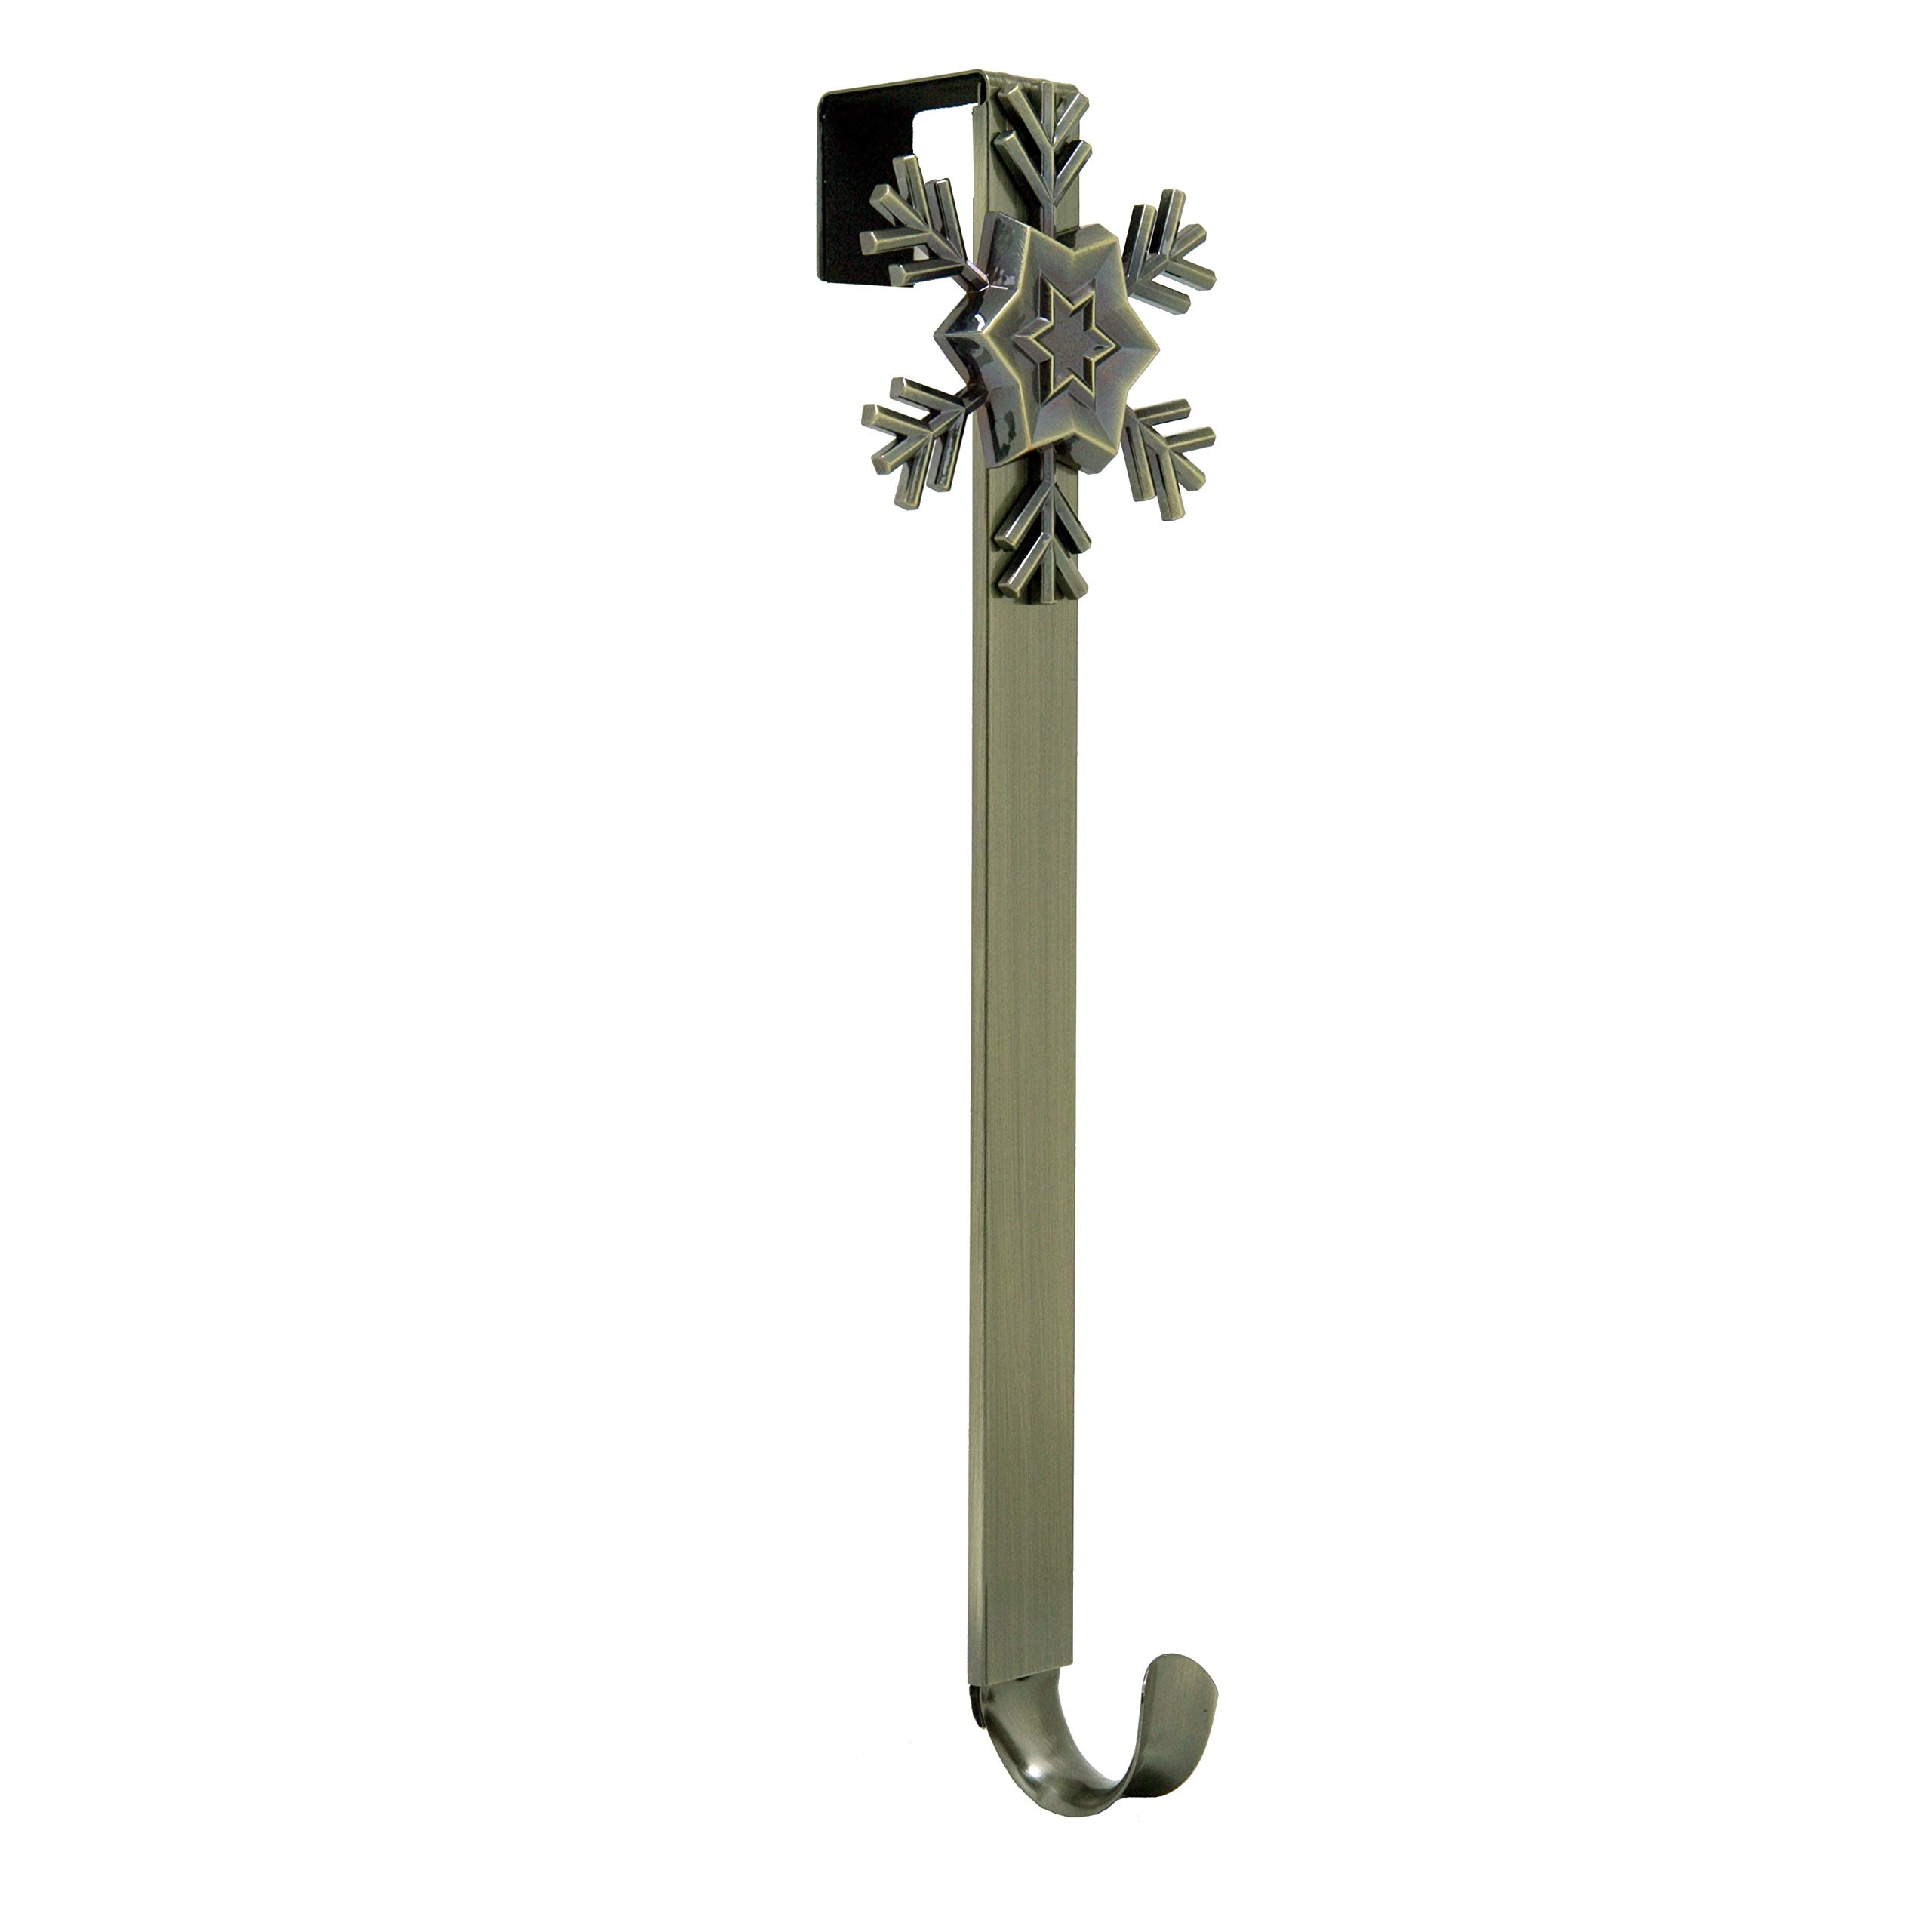 Adjustable Length Wreath Hanger with Removable Icon (Antique Brass - Snowflake) by Haute Decor